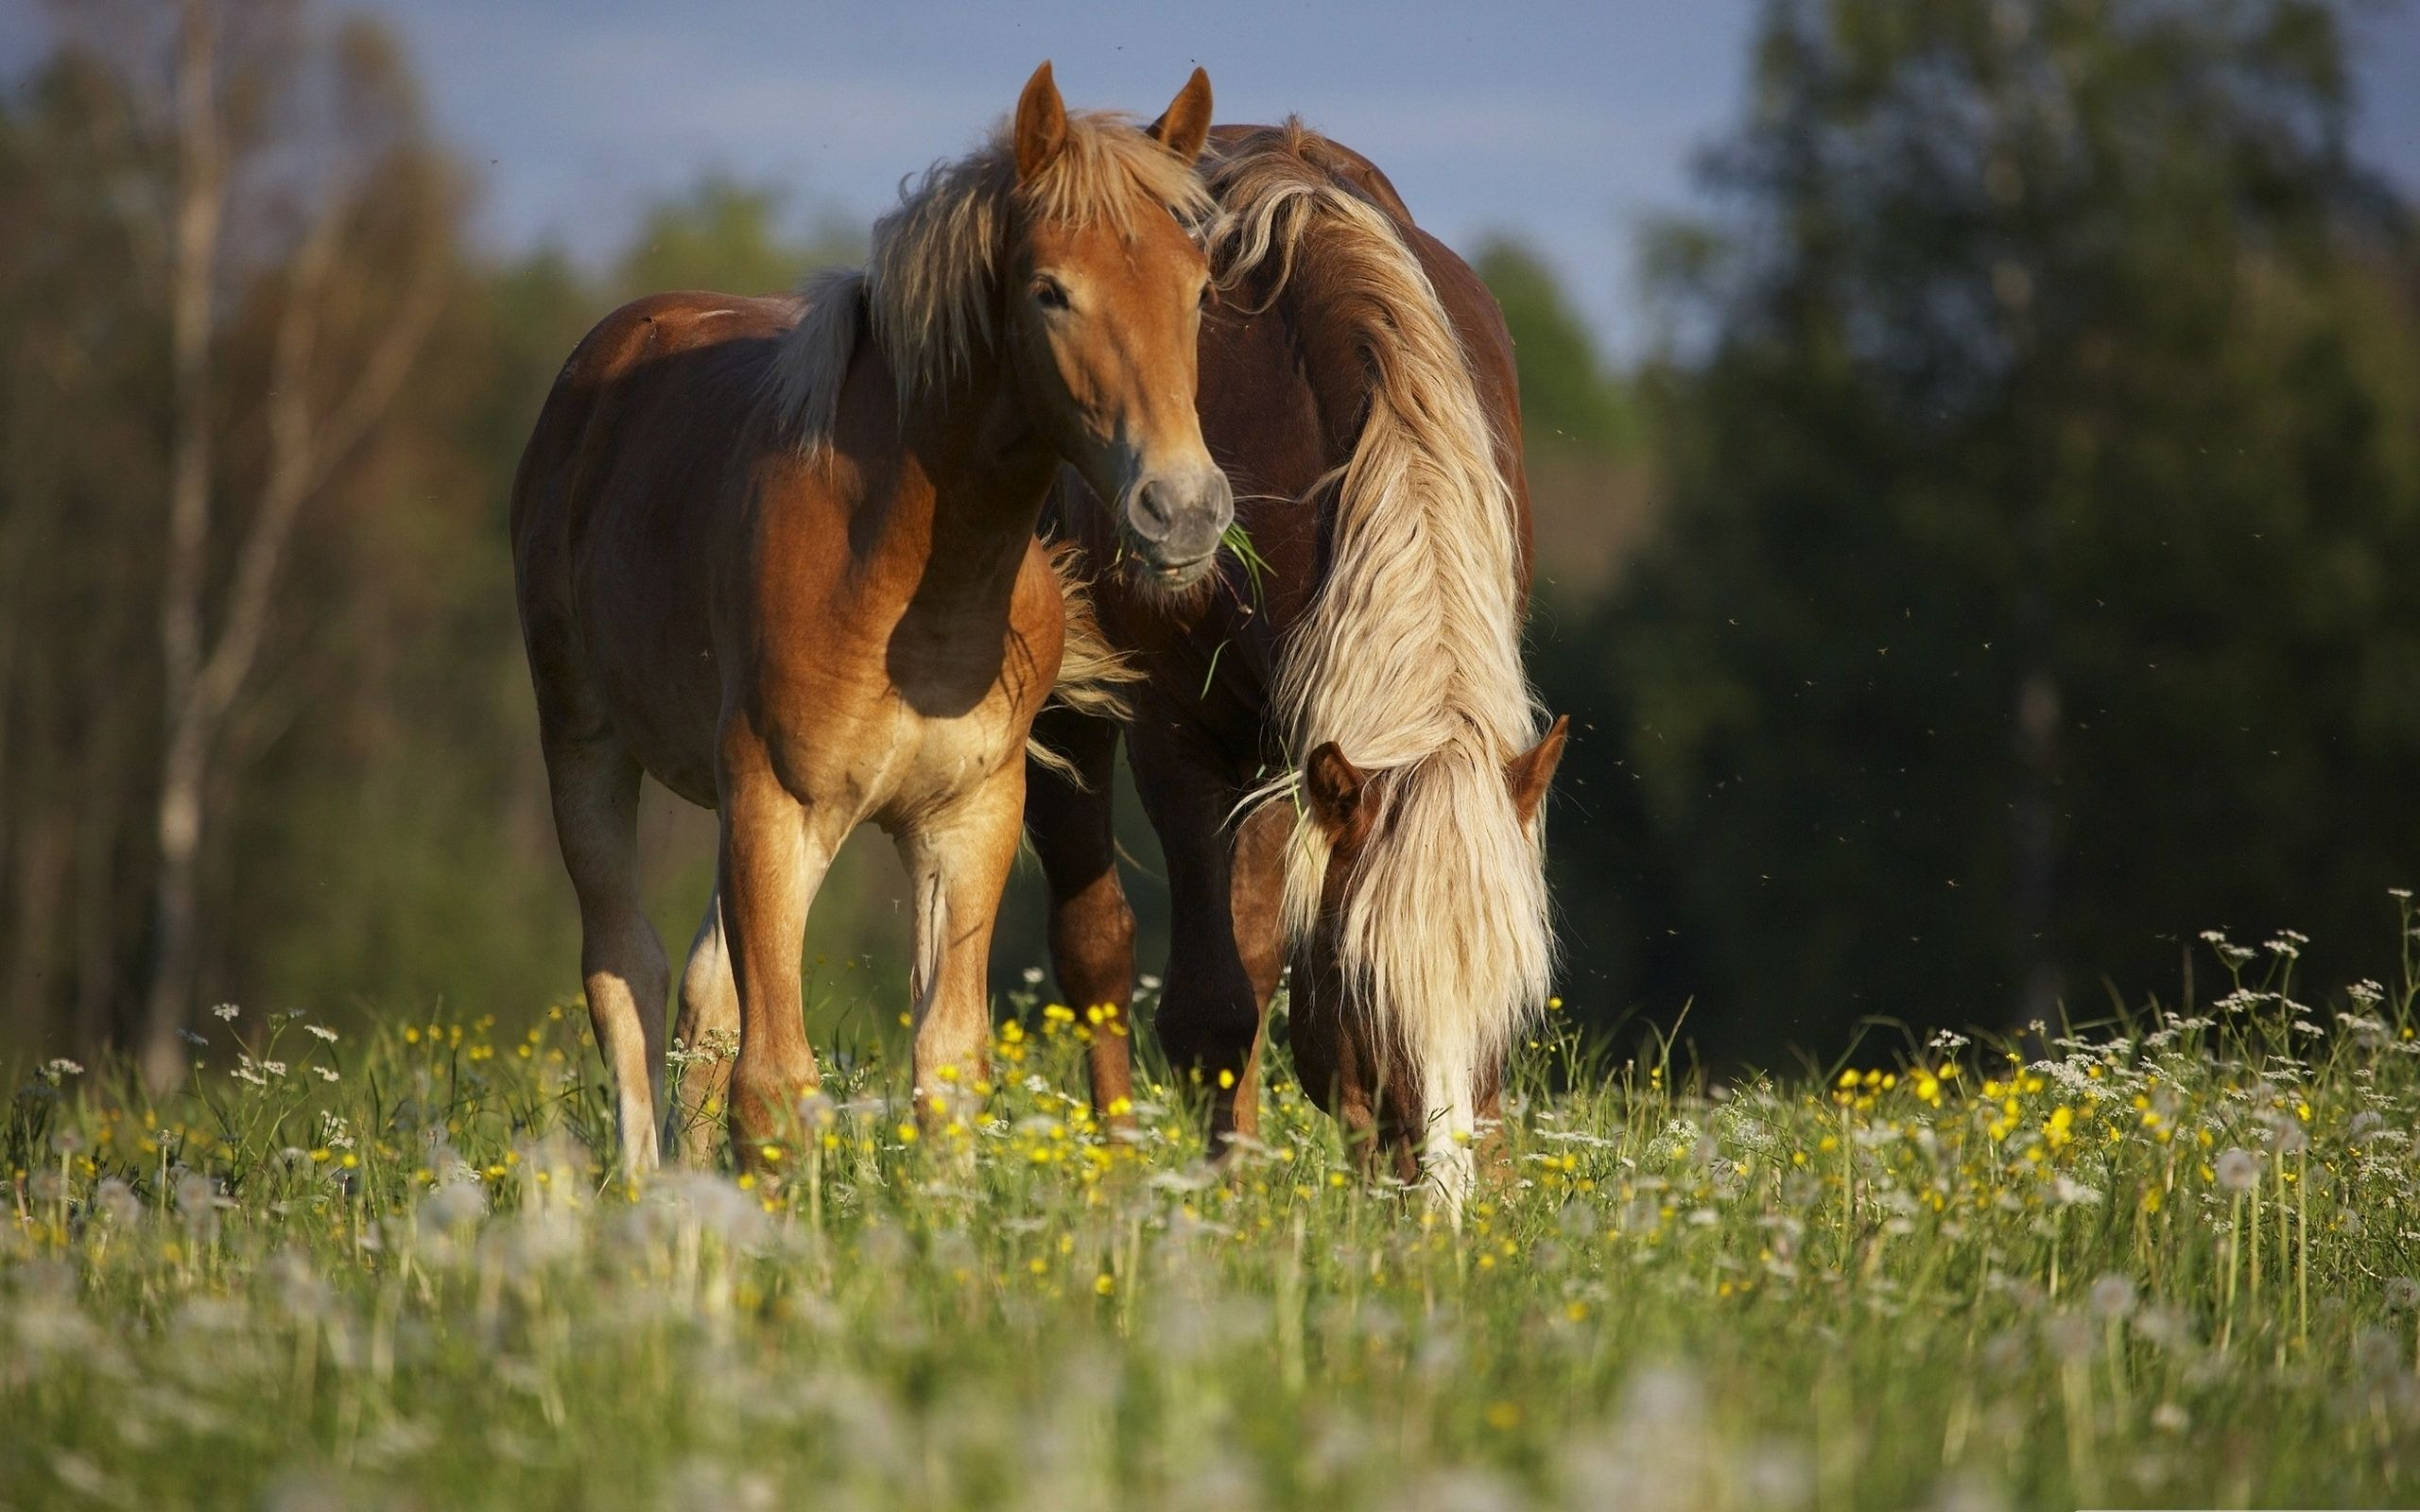 Cool Wallpaper Horse Couple - f63a652d50dd4c5ab7d02880aec37168  Photograph_14367.jpg